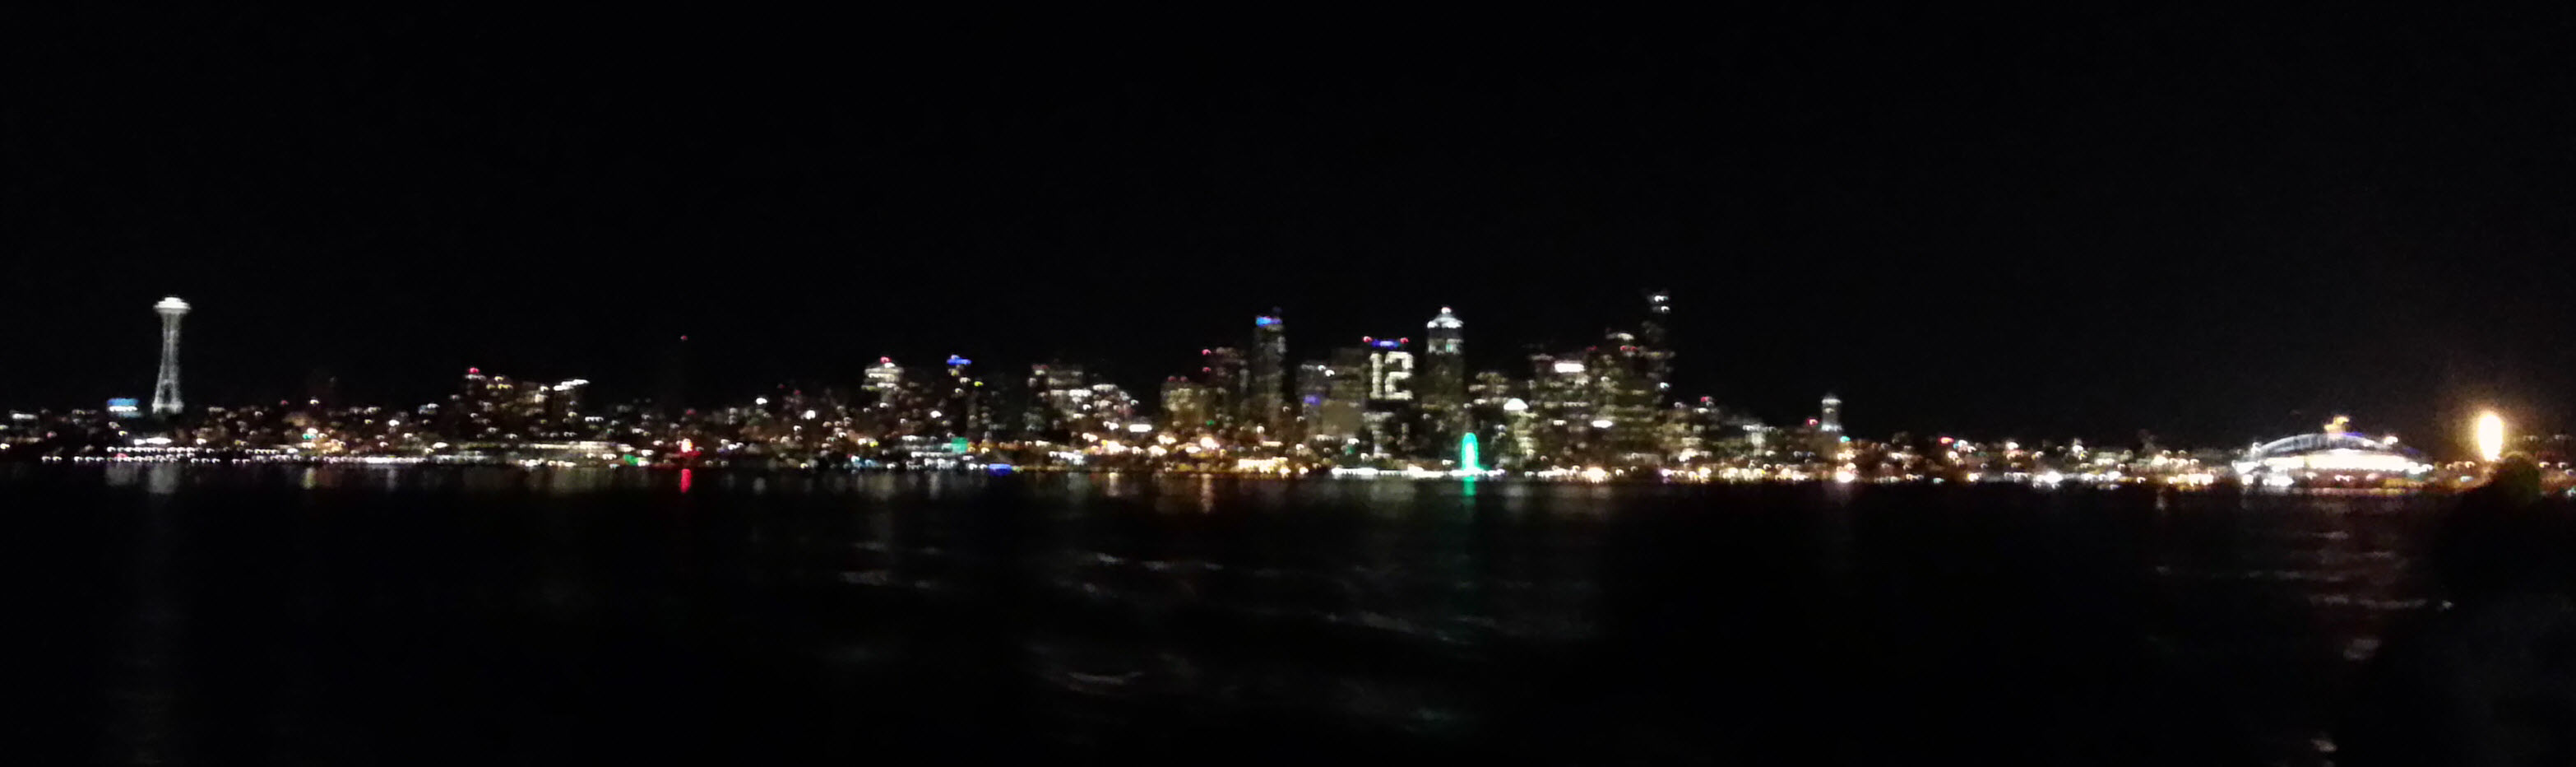 SeattleAtNight